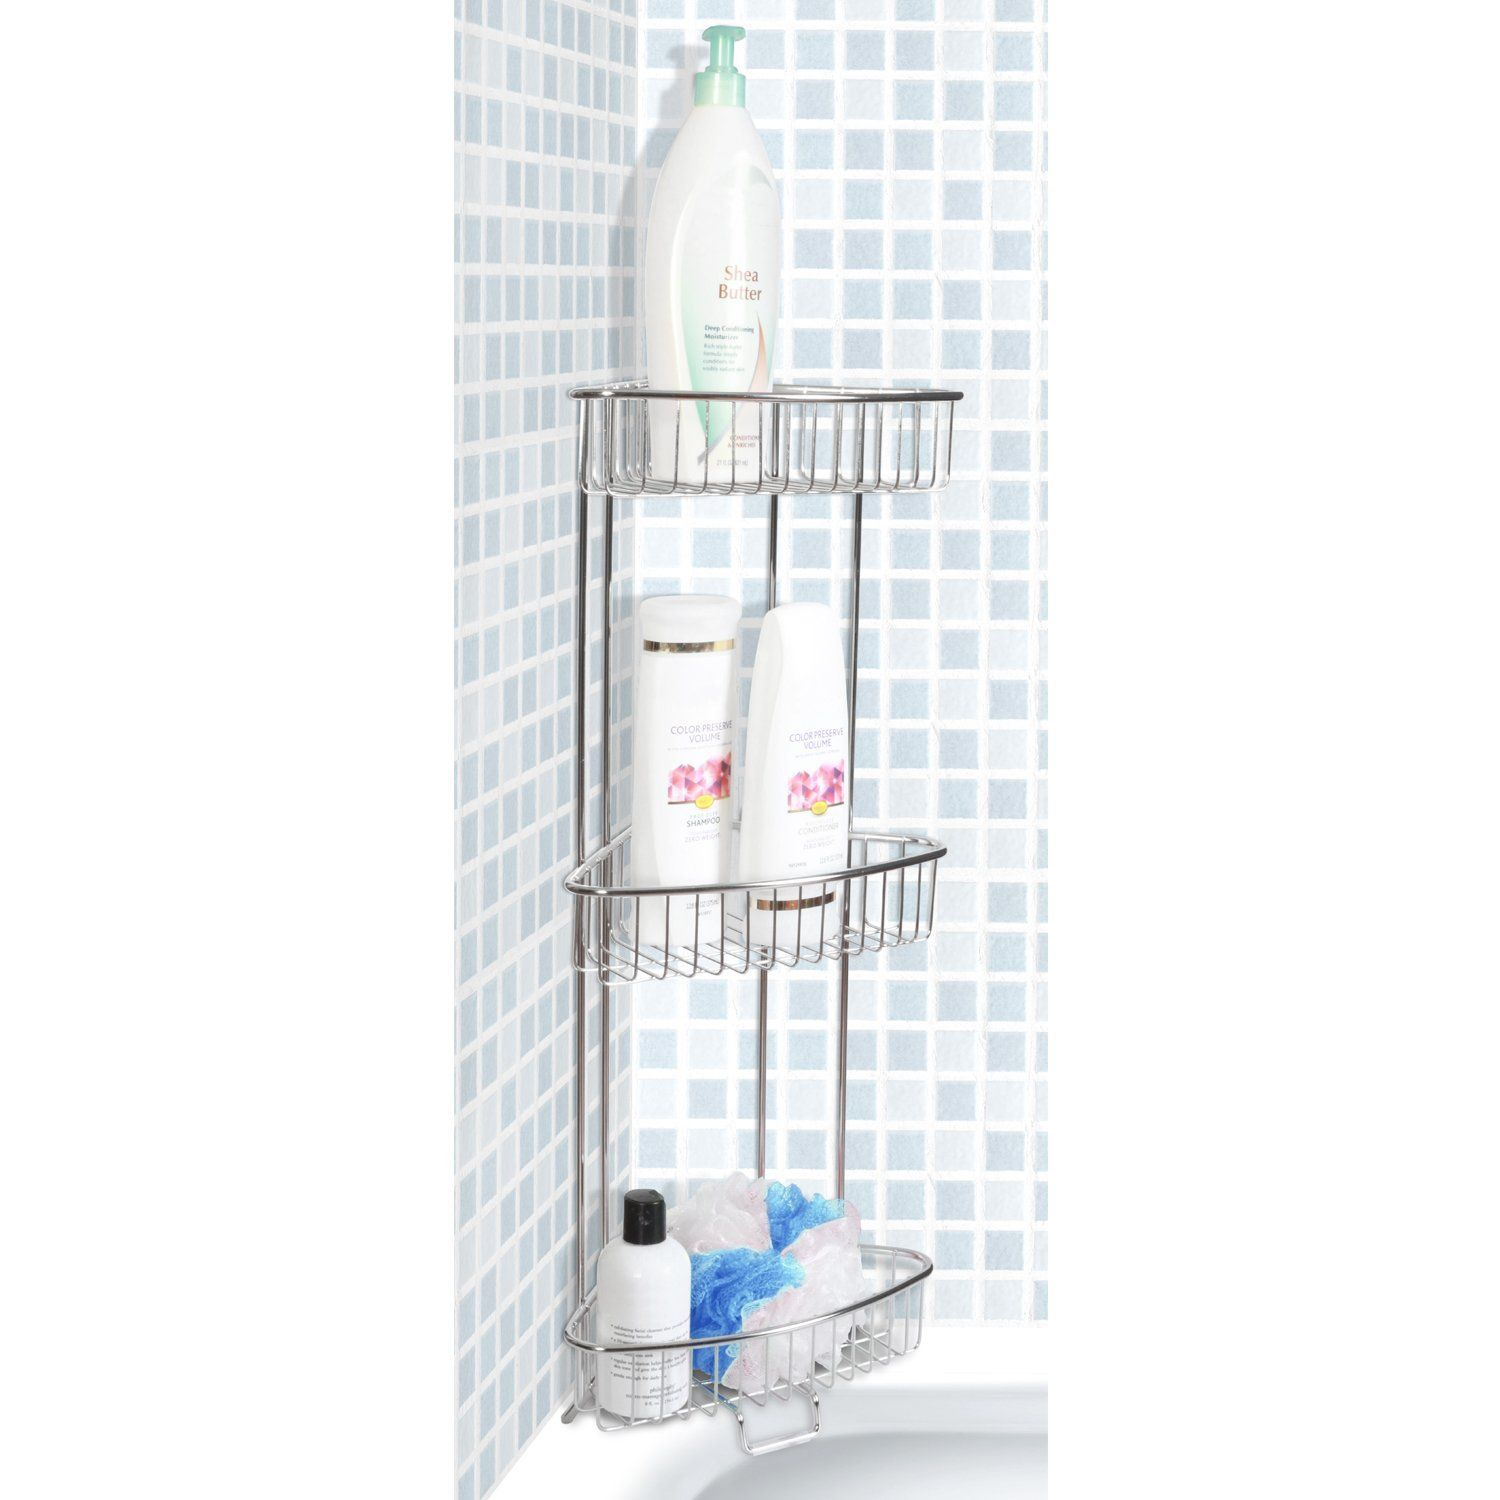 ToiletTree Products Shower Floor Caddy Is Made Of Stainless Steel And Comes  With A Rust Free